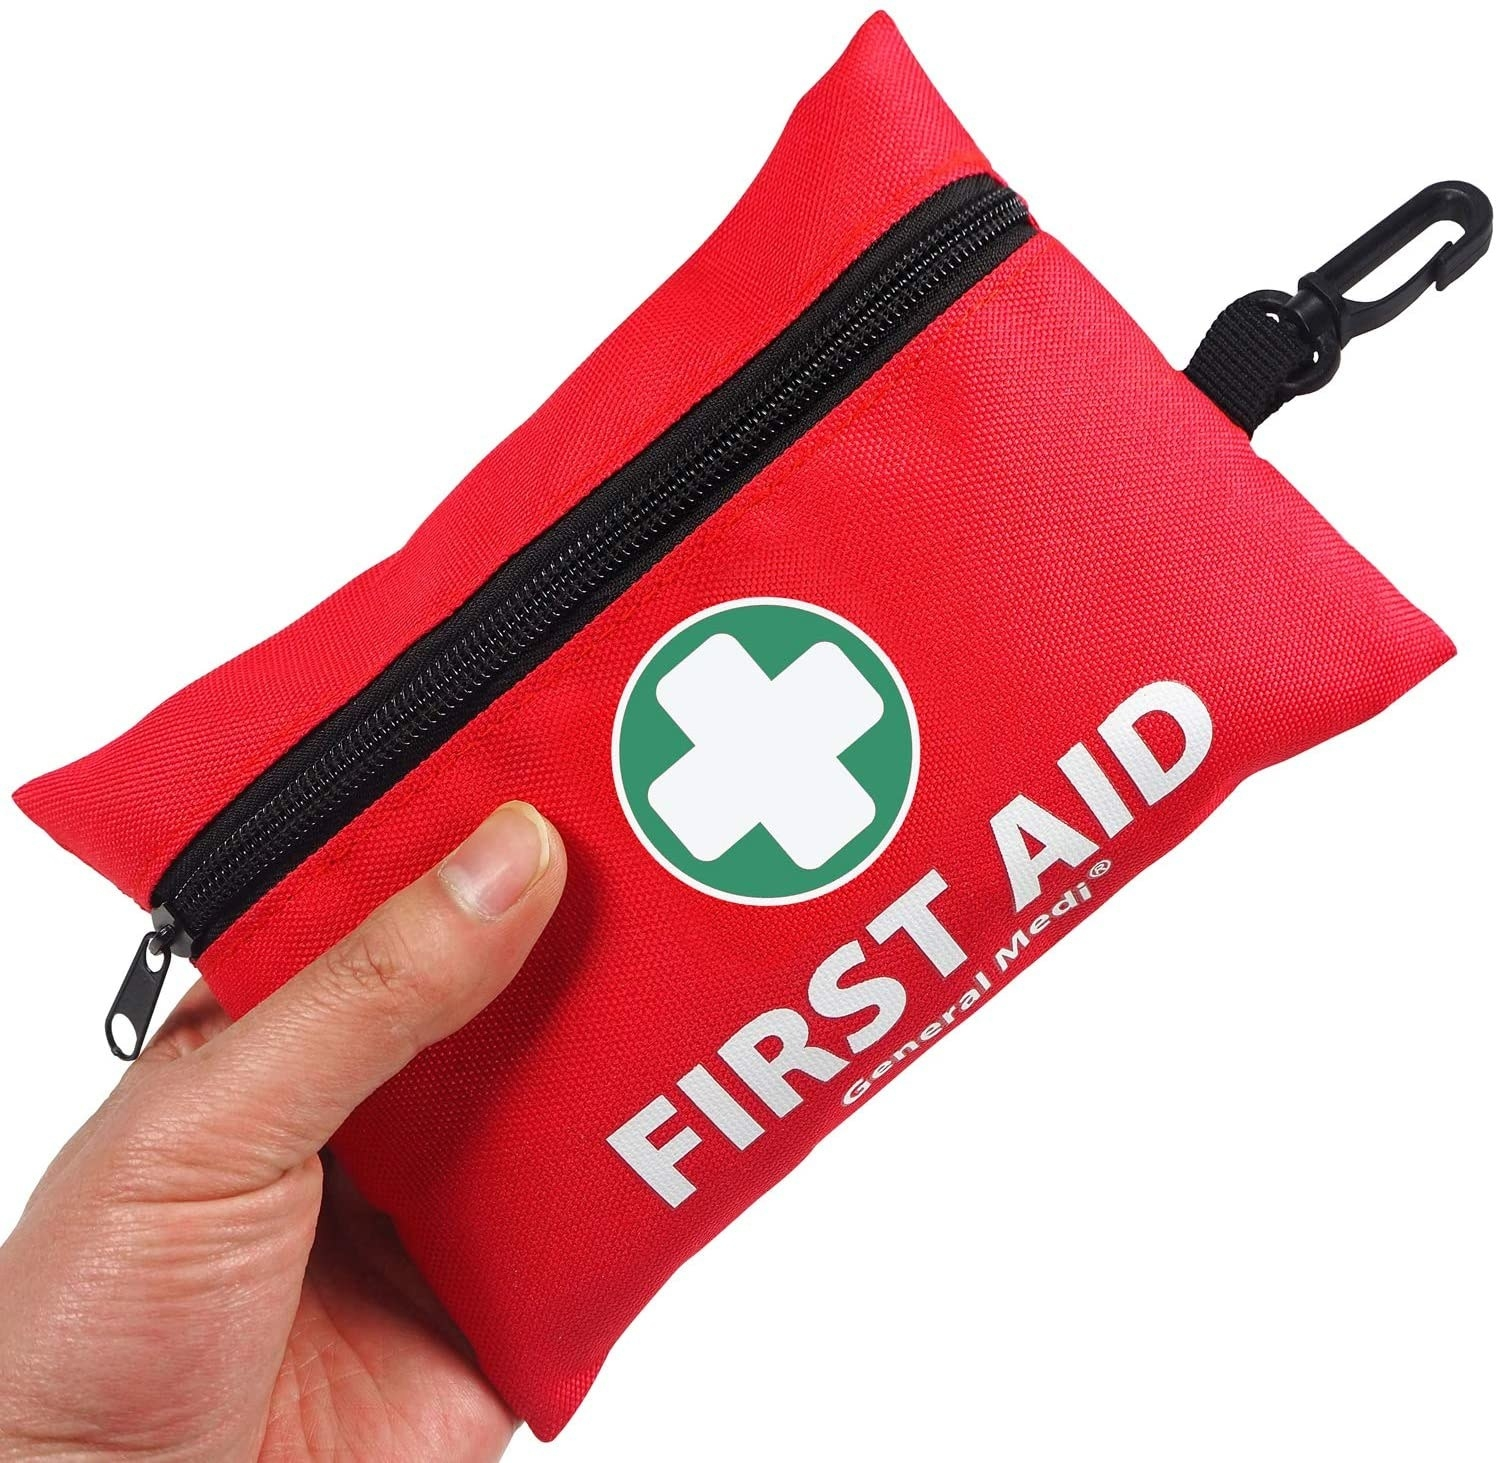 A hand with the first aid kit in a zip-pack